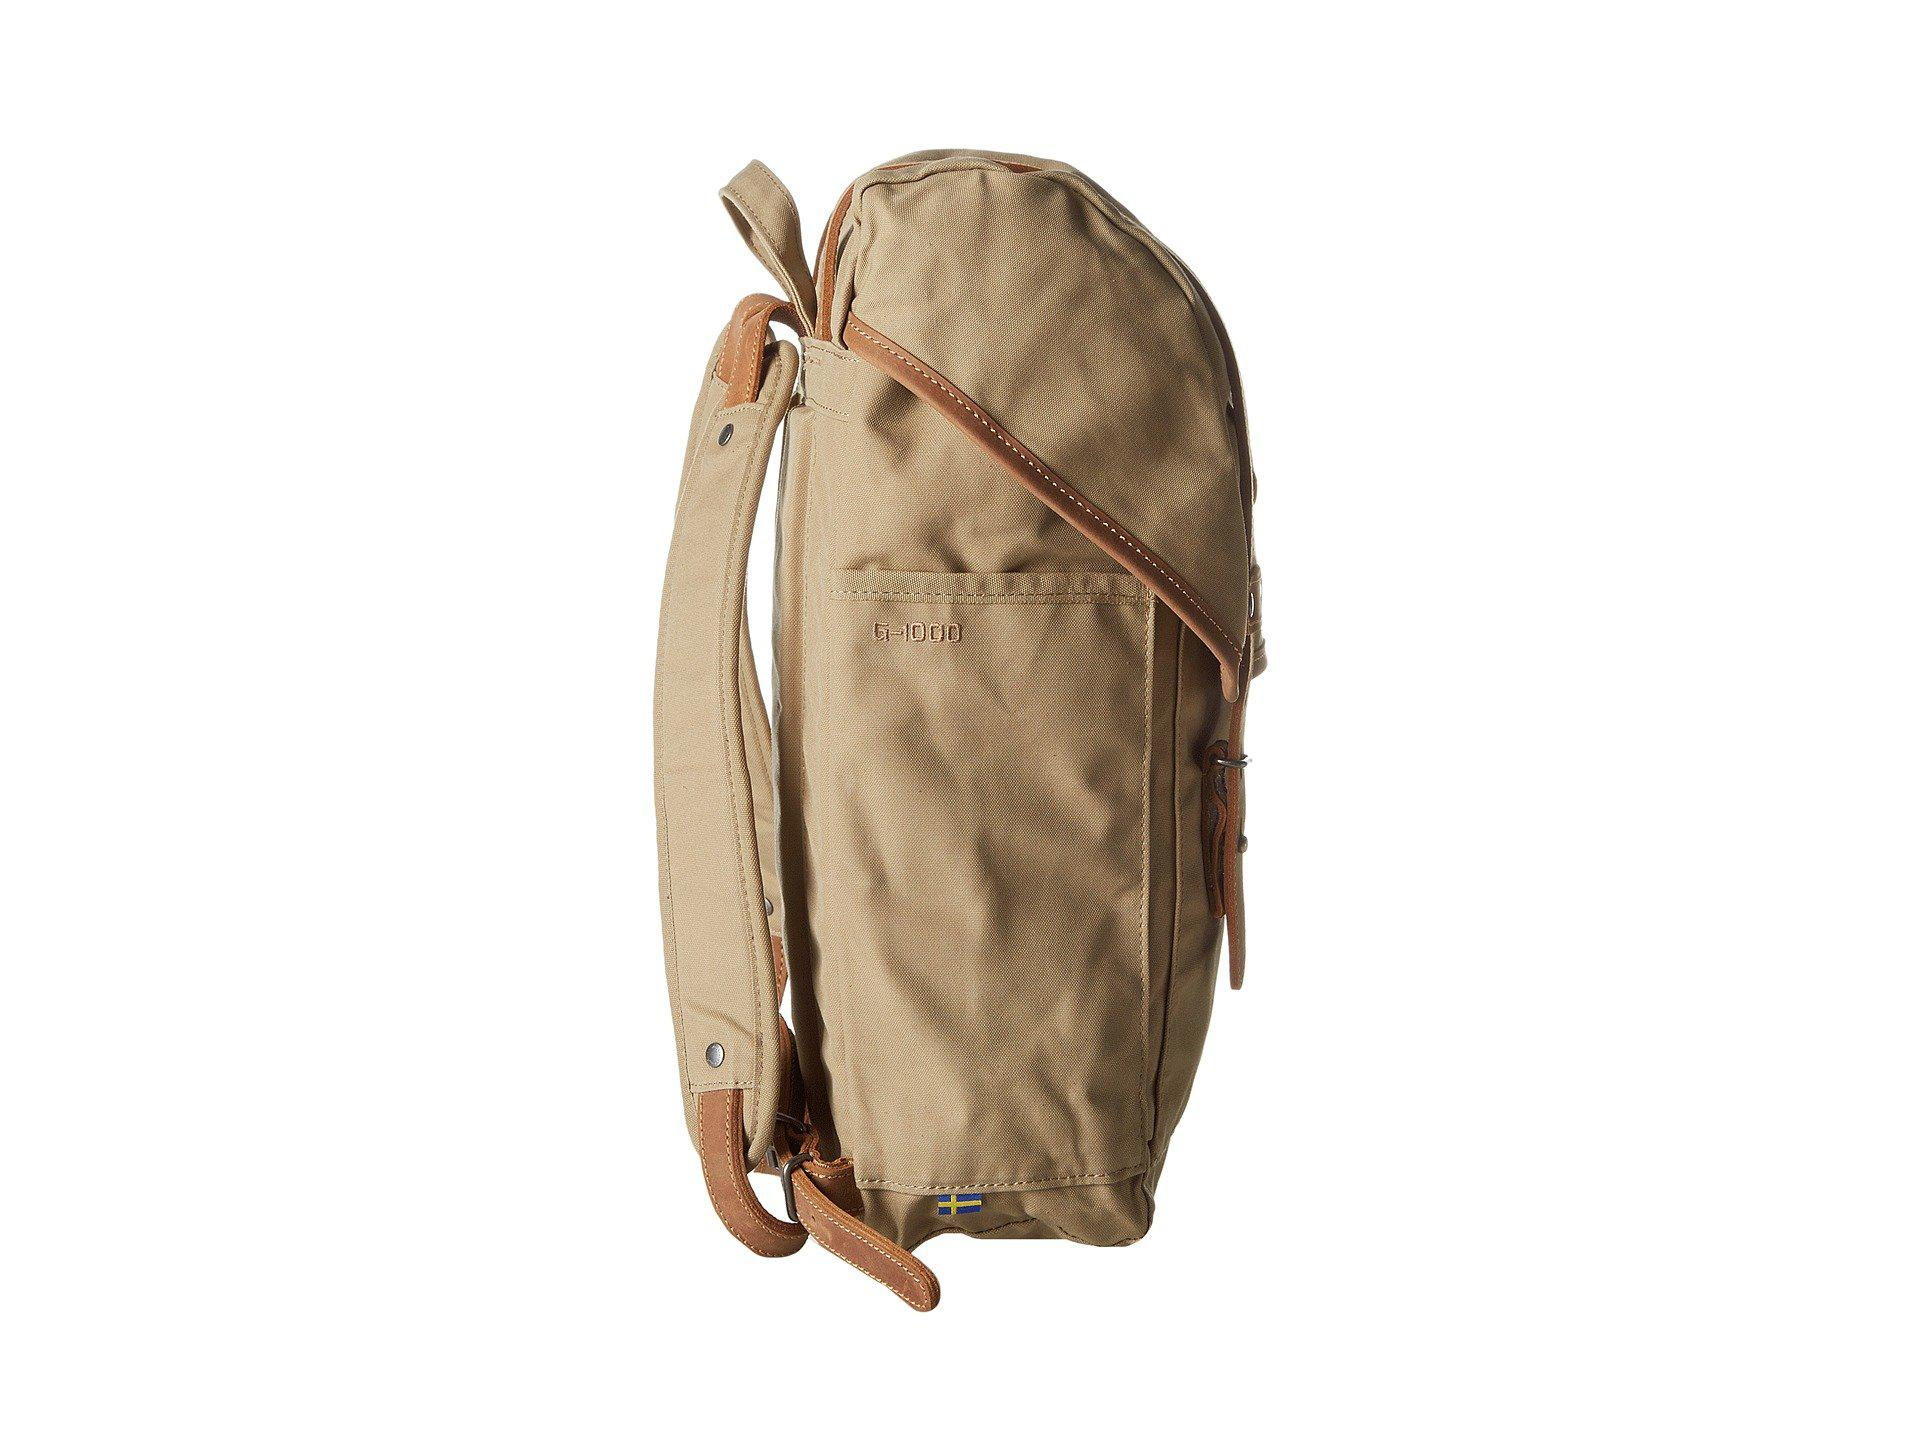 Lyst - Fjallraven Rucksack No. 21 Small (sand) Backpack Bags in ... 3c20bf6b22227